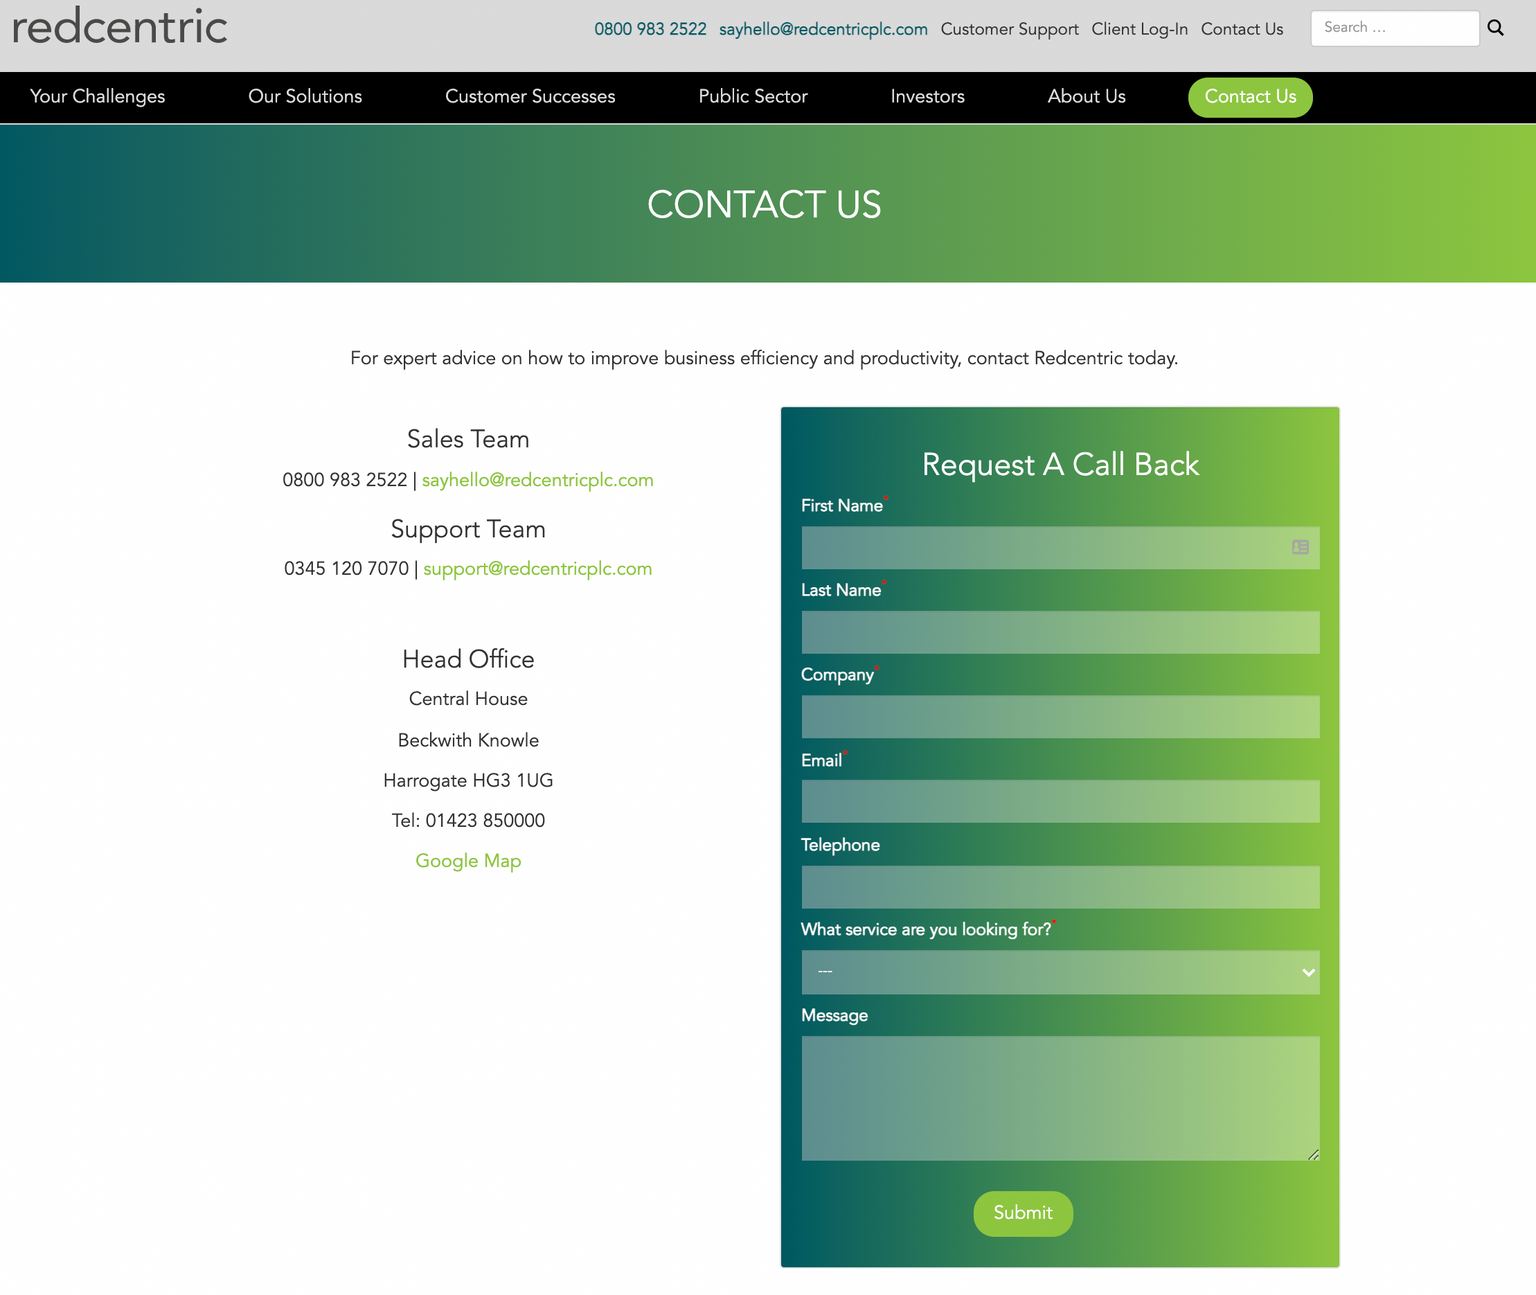 Why your contact page doesn't generate any actual contacts - typical contact page, with contact info and a long form